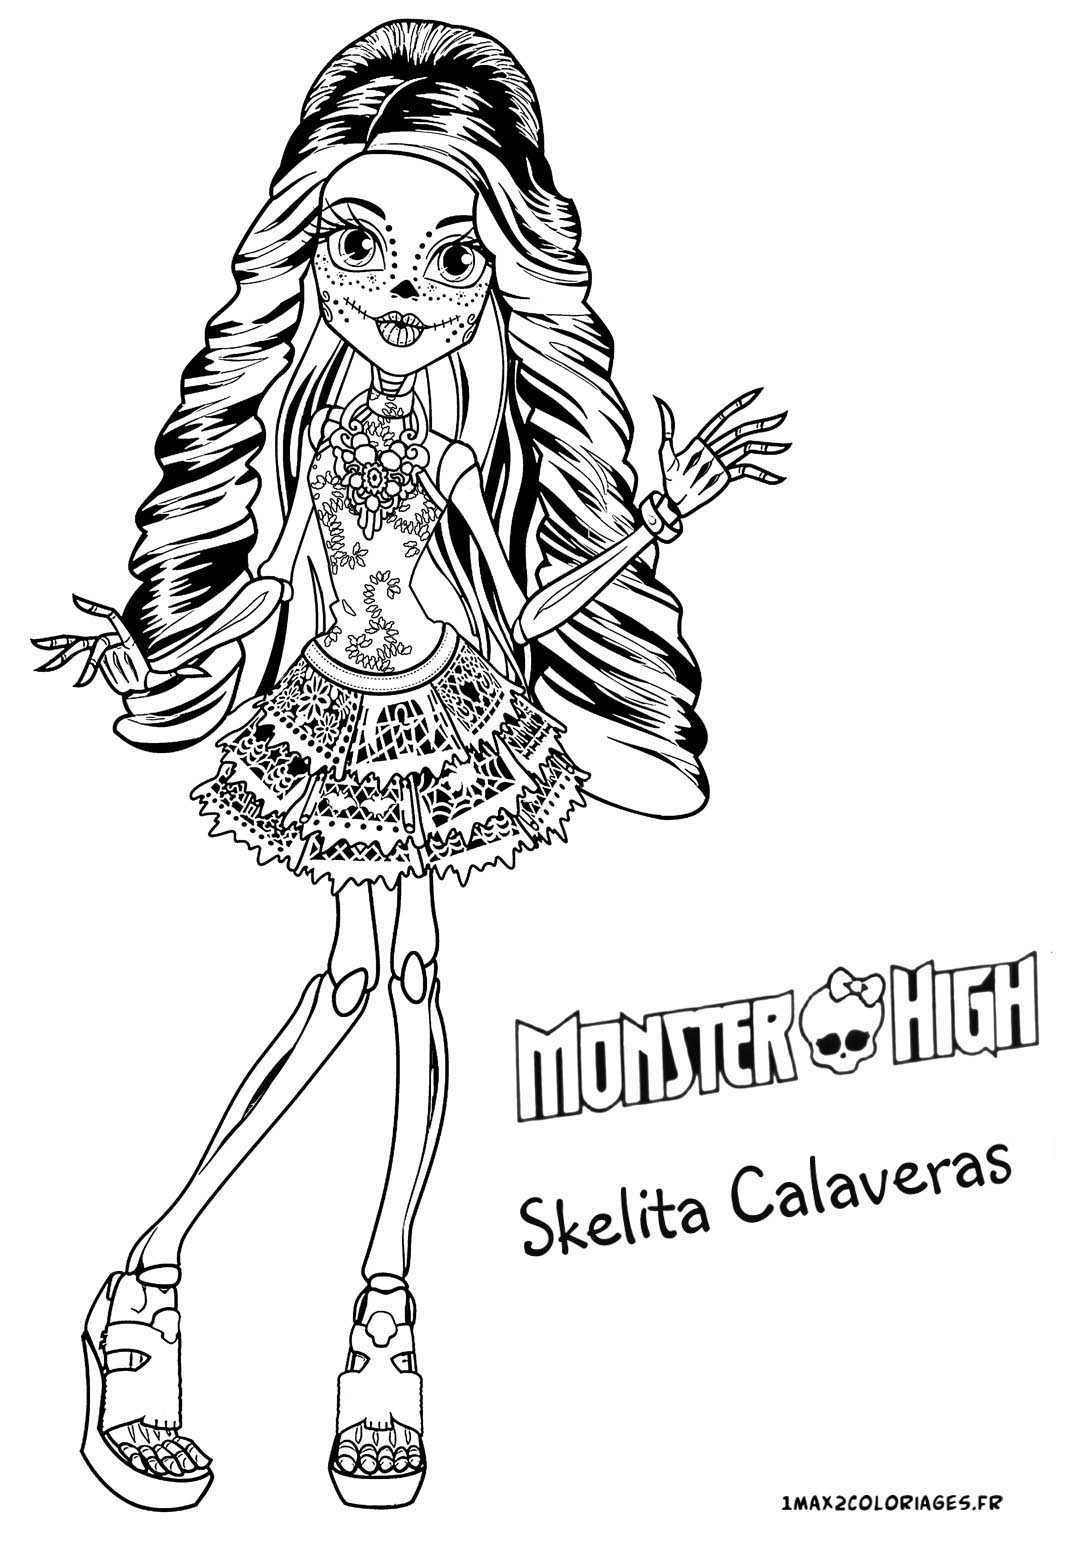 Coloriages Monster High Coloriage Monster High Coloriages Pour